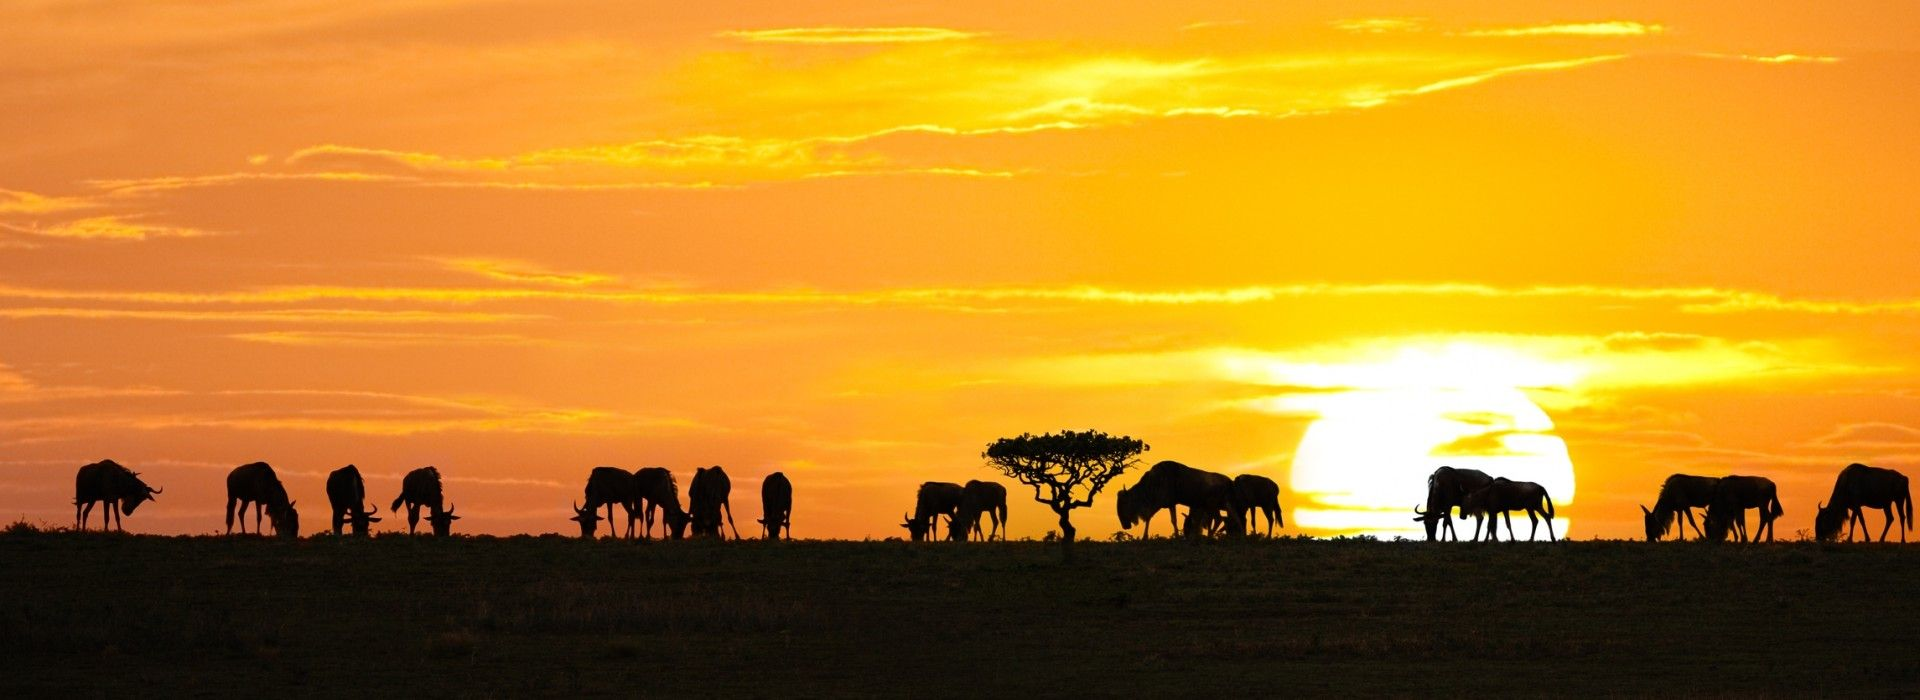 Cultural, religious and historic sites Tours in Serengeti National Park